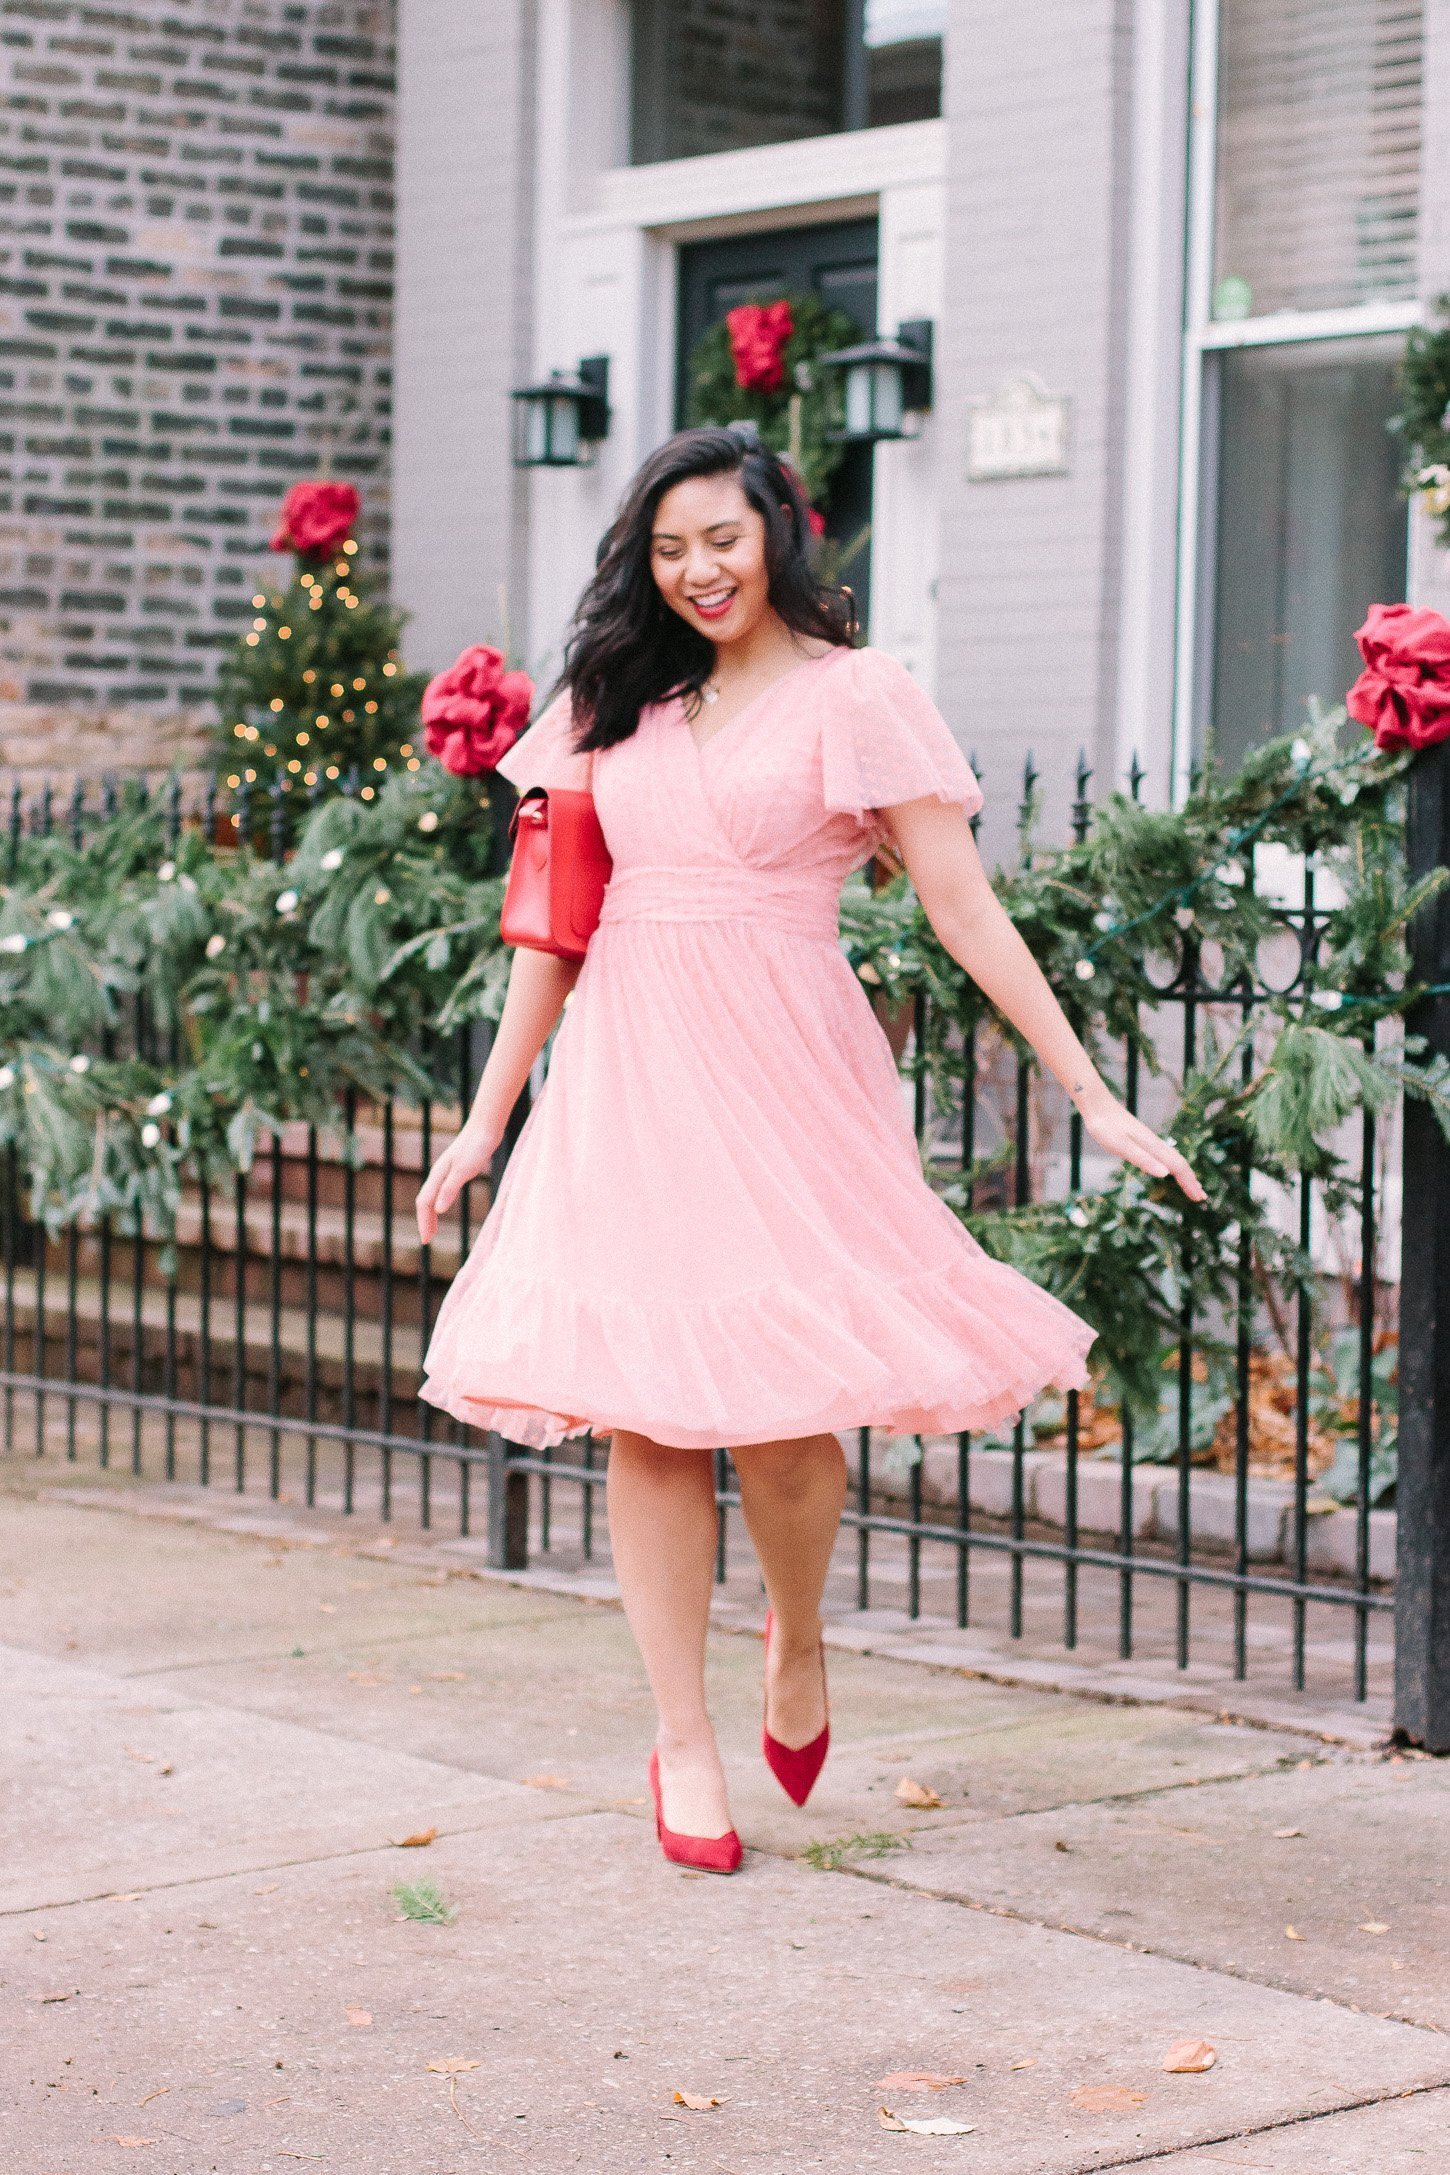 b45d151884 The Most Darling Holiday Dress For The Girly Girl - RD's Obsessions